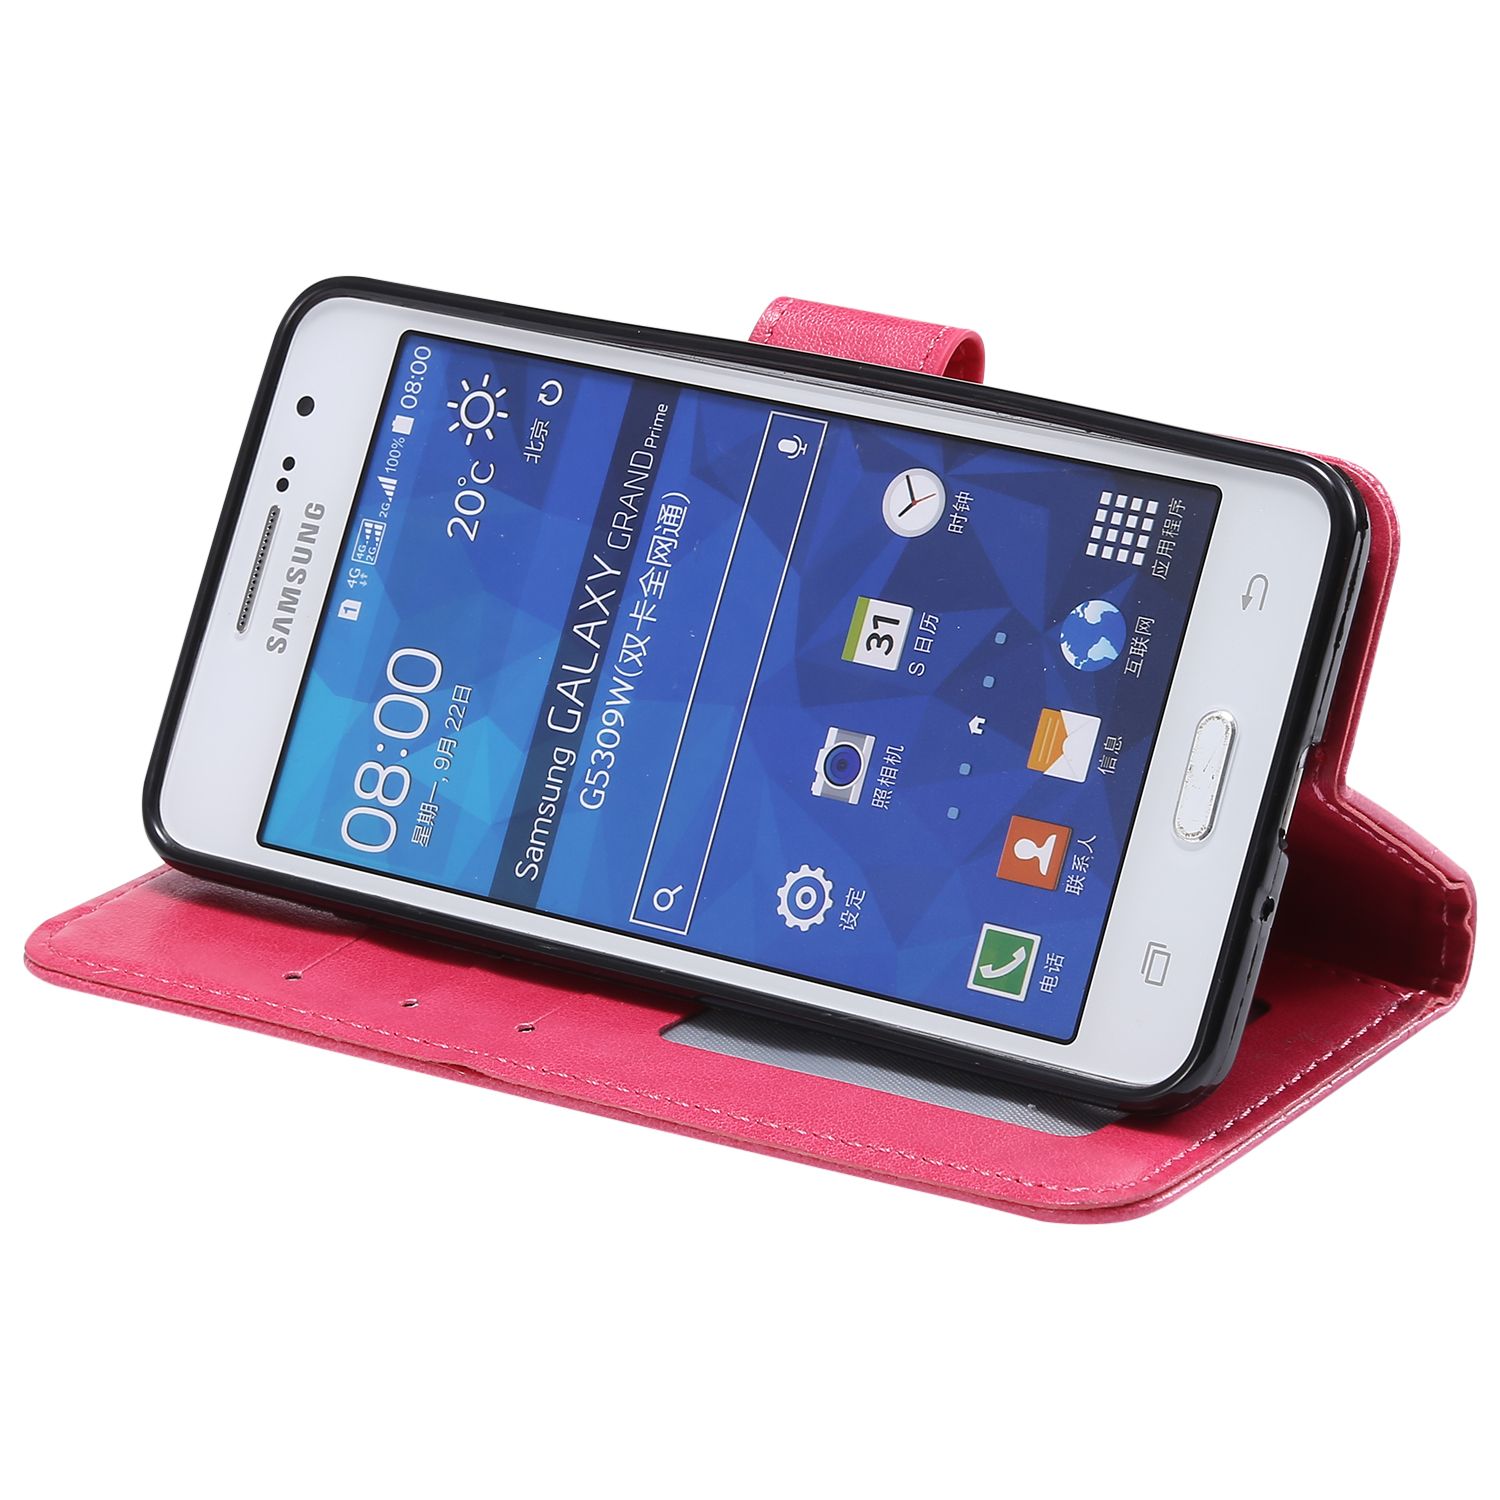 Case Suit For Samsung Galaxy Grand Prime G531 SM G530H SM G531F SM G531H DS Case Protect SM G531H G531F G531H DS Cases in Fitted Cases from Cellphones Telecommunications